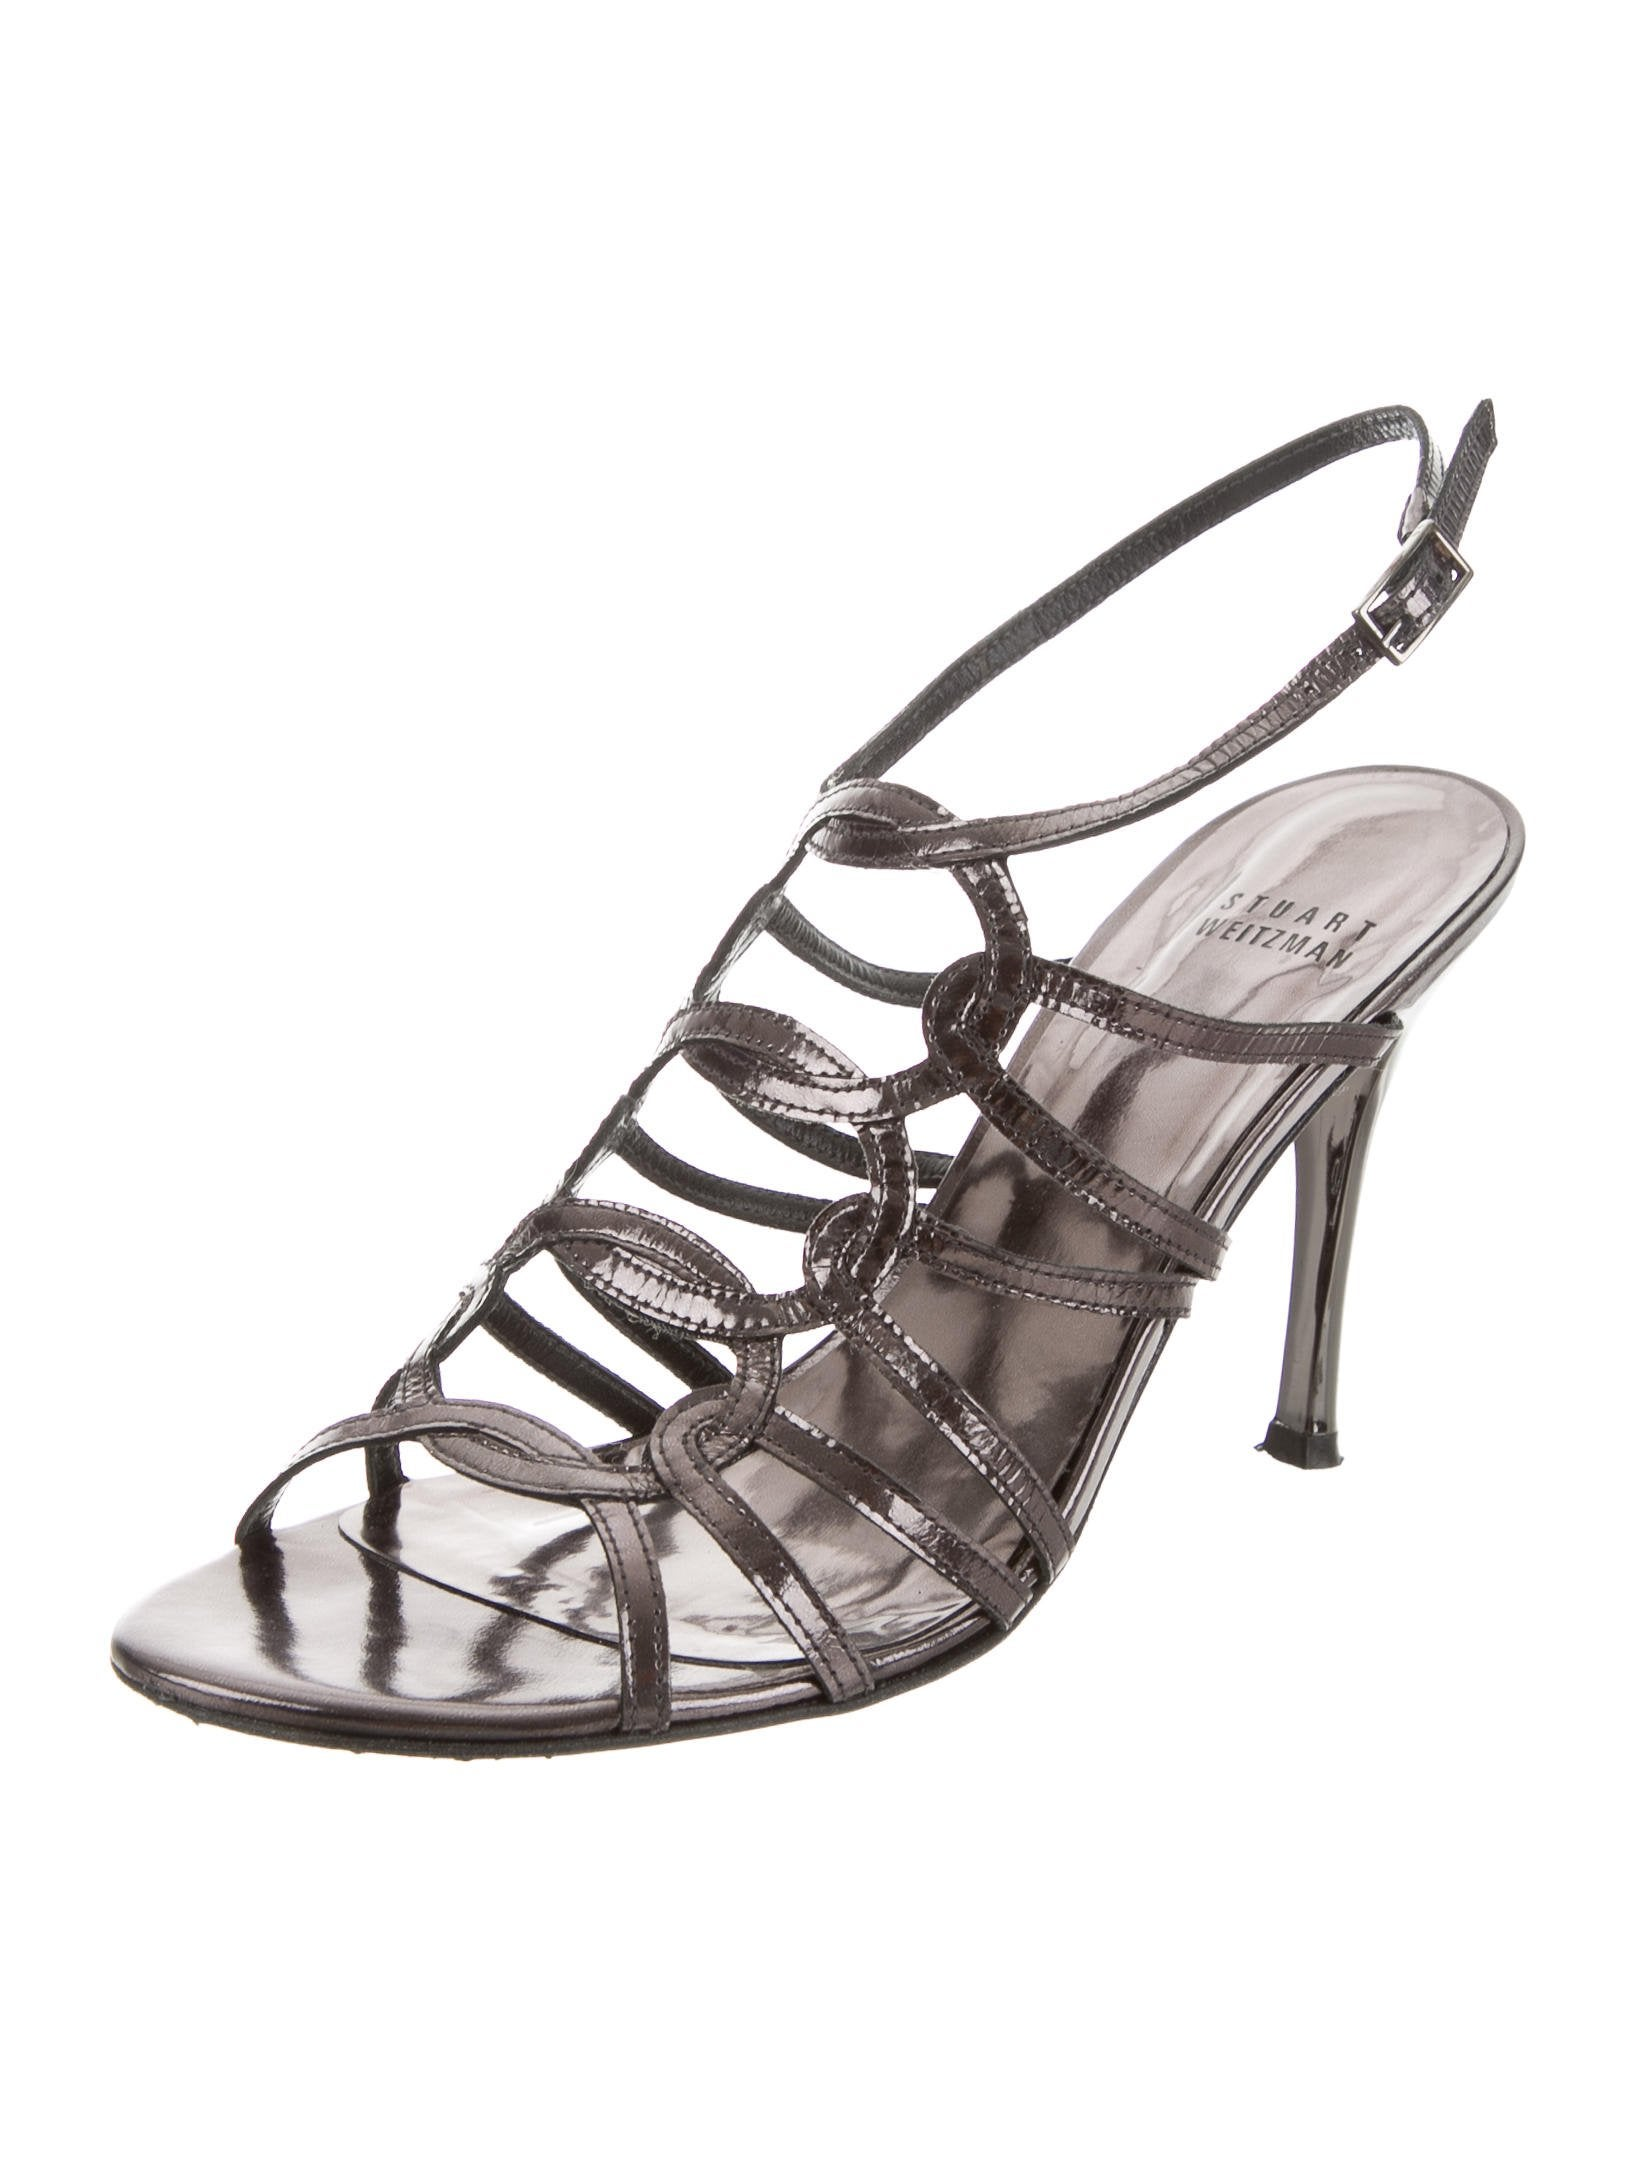 new styles cheap price Stuart Weitzman Saturn Cage Sandals cheap sale clearance clearance outlet cheap price cost 94rljUQAUA